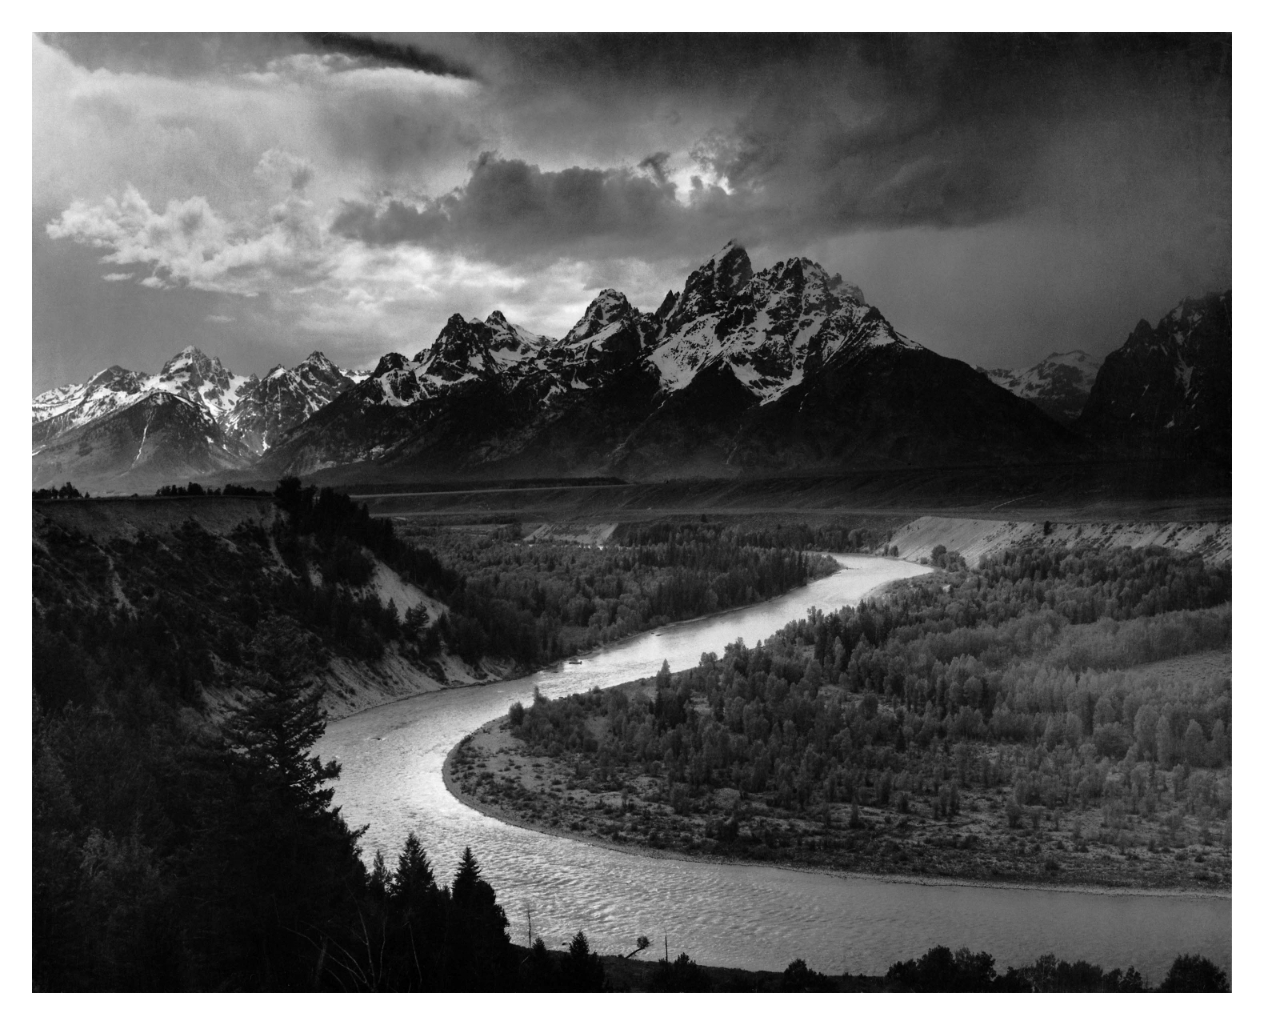 The Tetons and the Snake River 1942